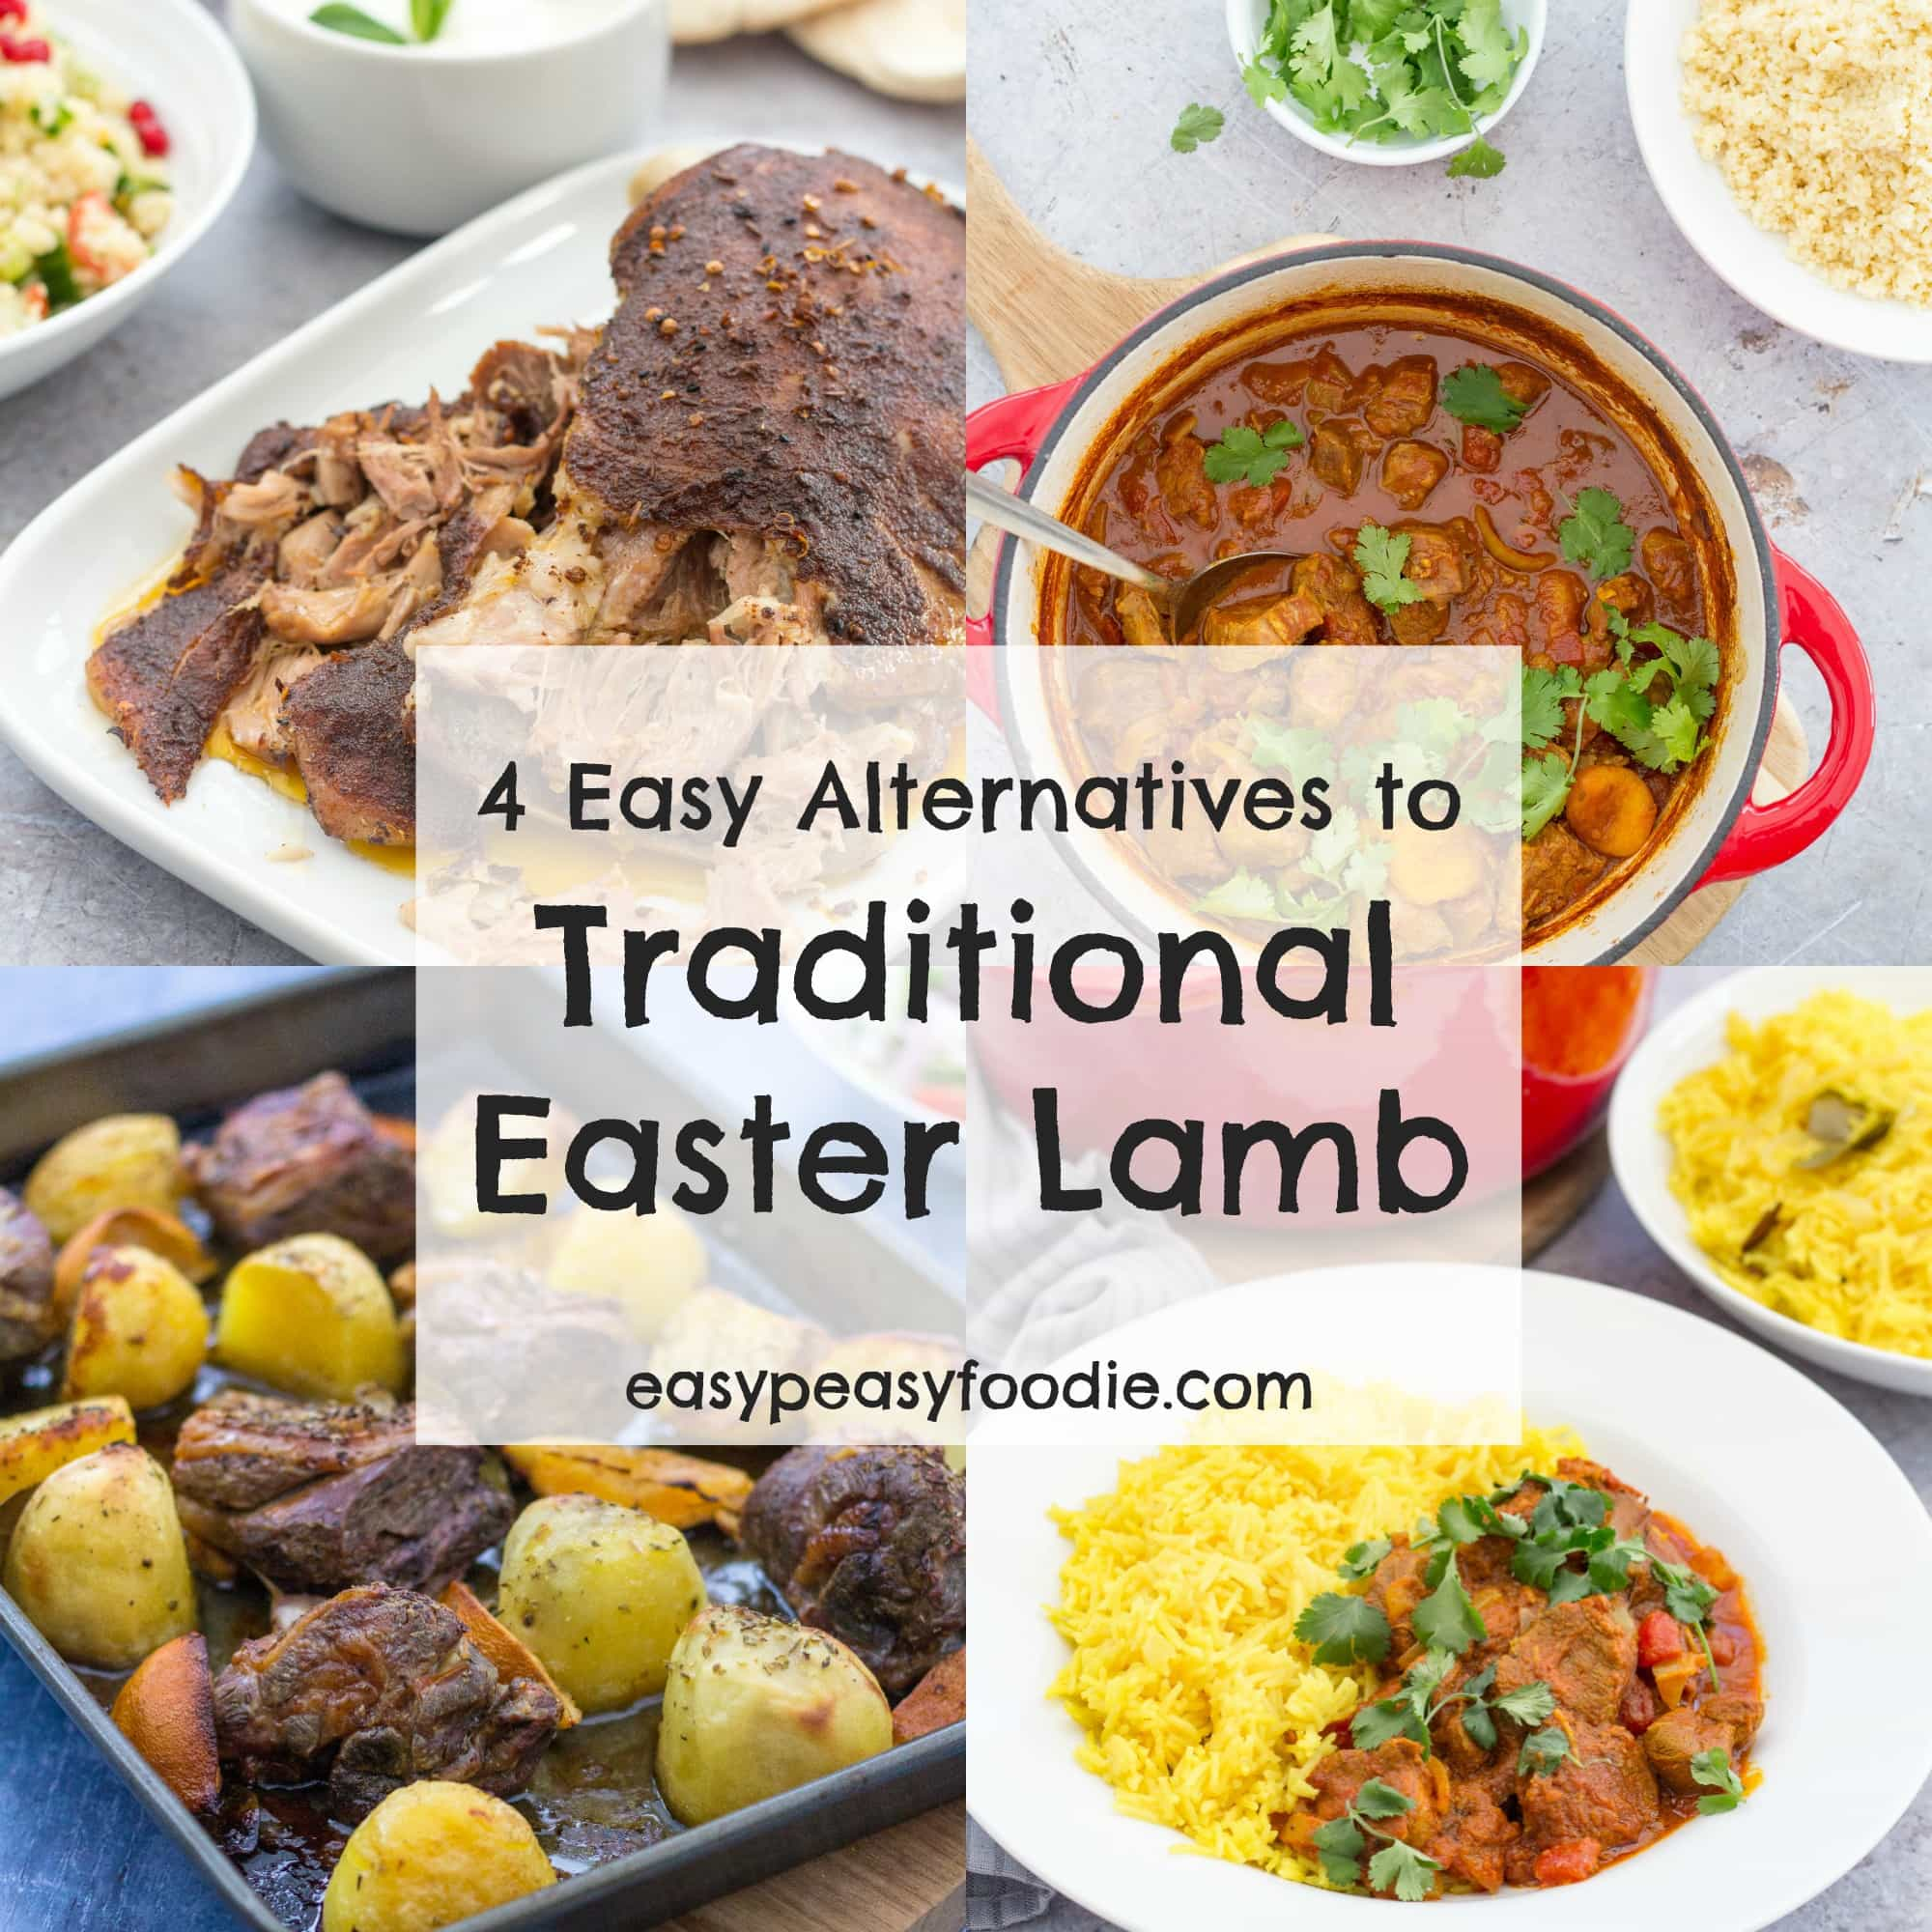 30 Stress Free Easy Camping Food Ideas Your Family Will: 4 Easy Alternatives To Traditional Easter Lamb